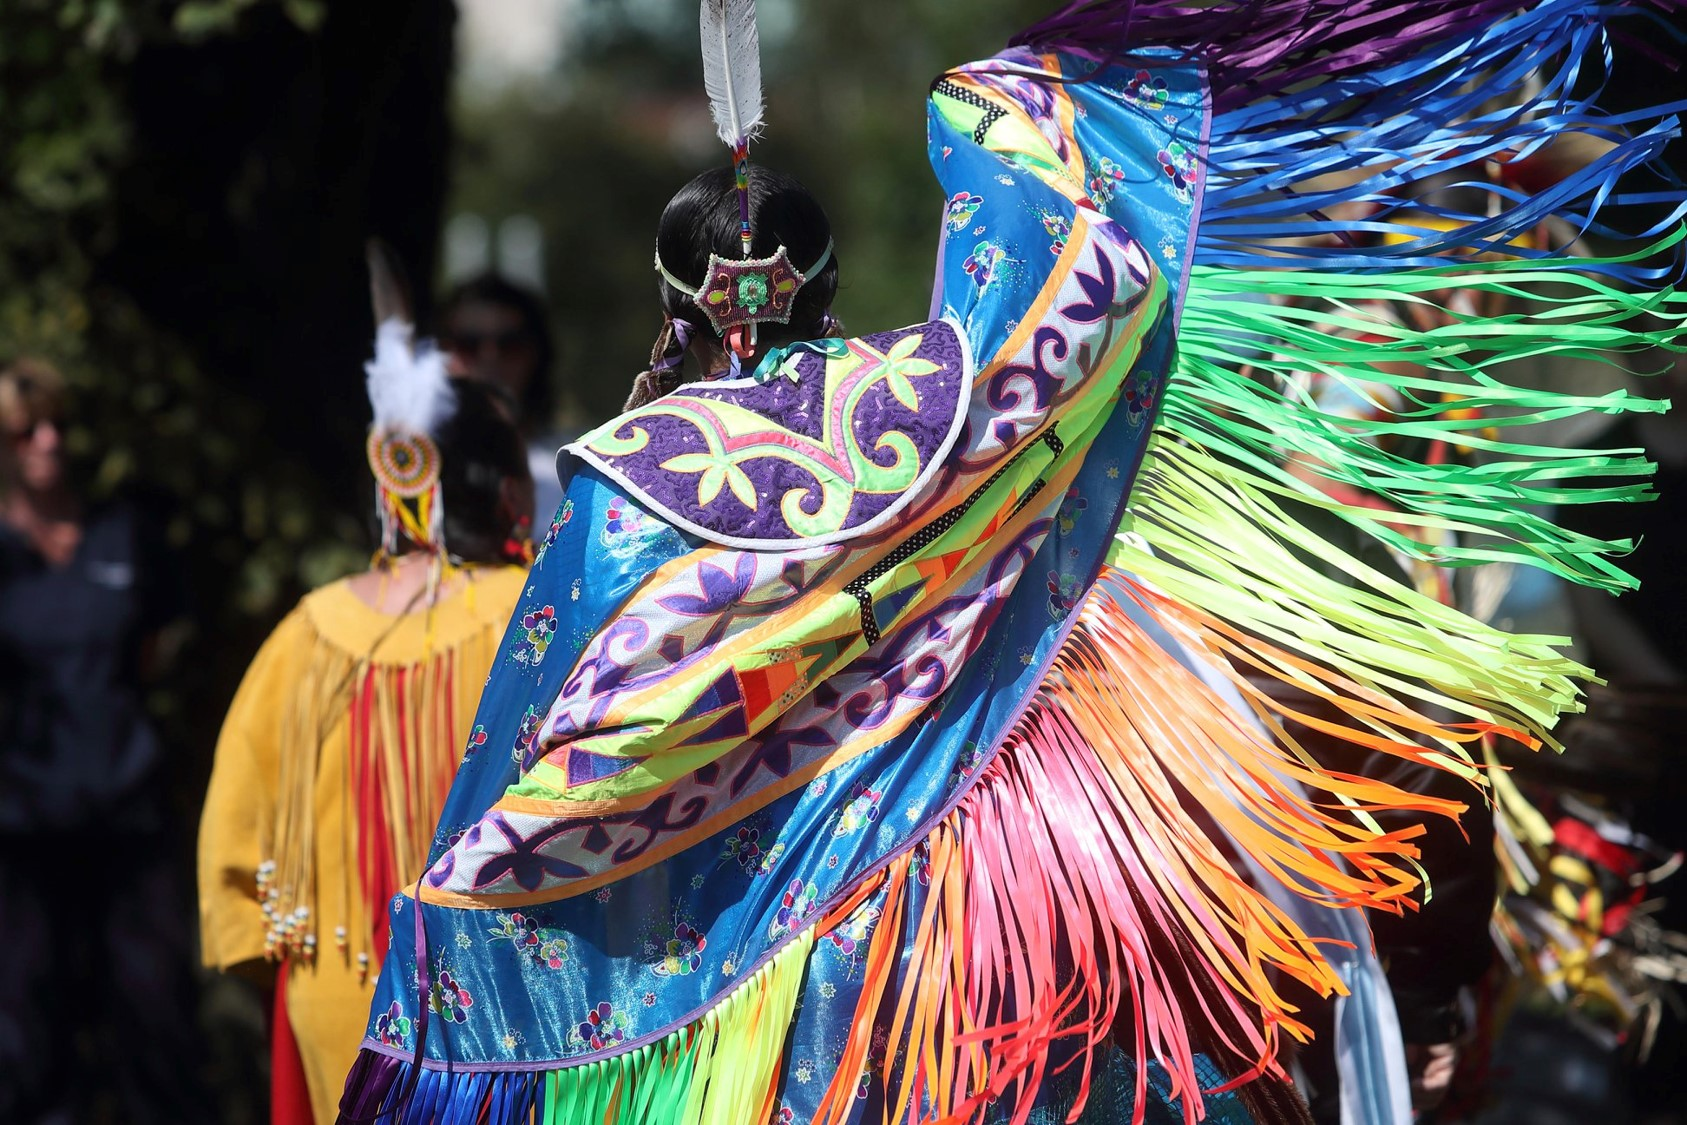 Above: A jingle dancer participates in the Mawiomi during 2018 Welcome Weeks.